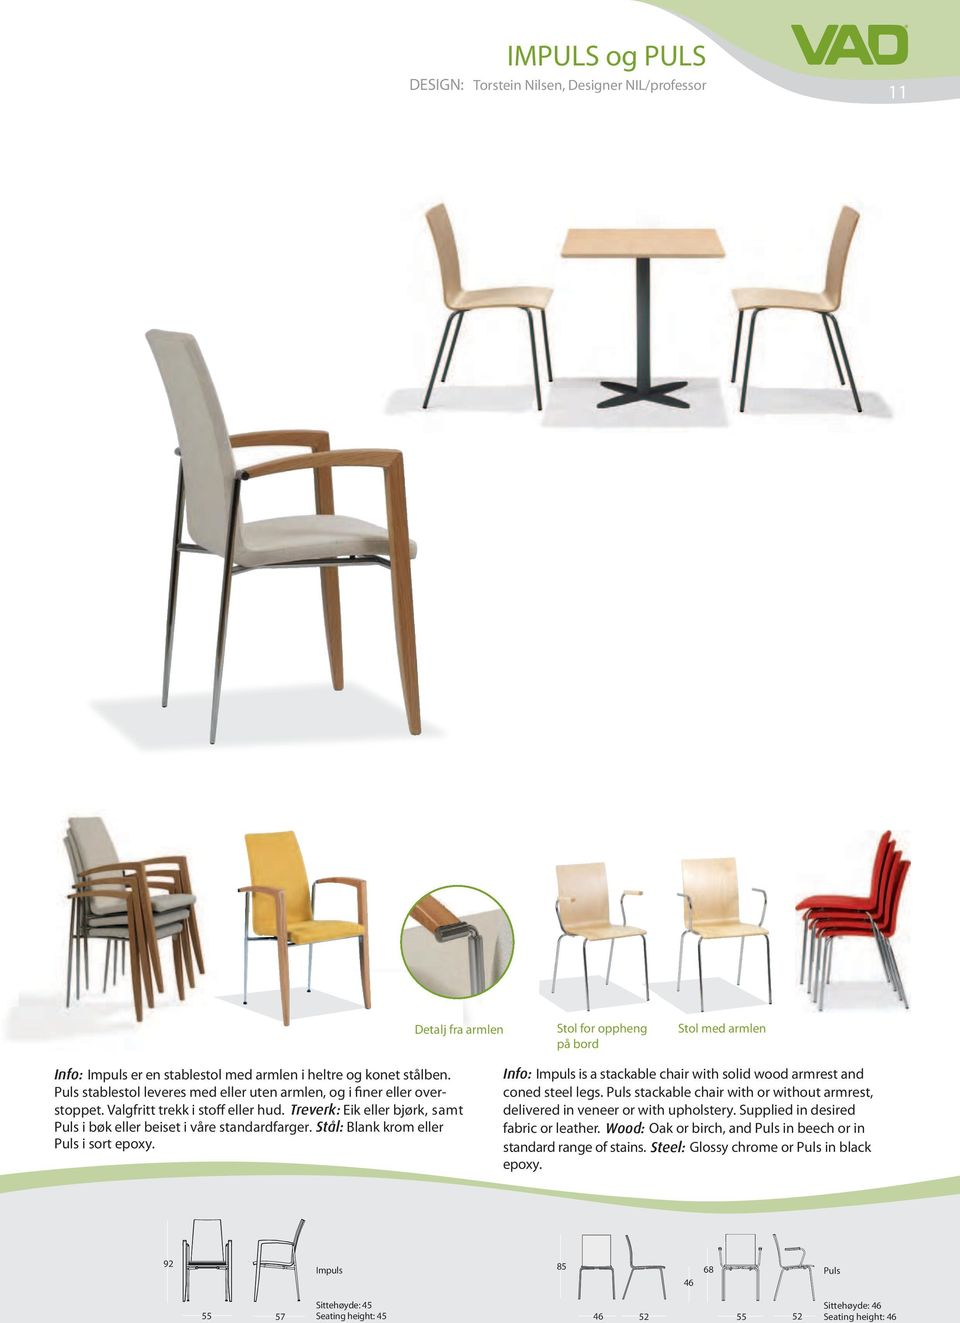 Stål: Blank krom eller Puls i sort epoxy. Info: Impuls is a stackable chair with solid wood armrest and coned steel legs.